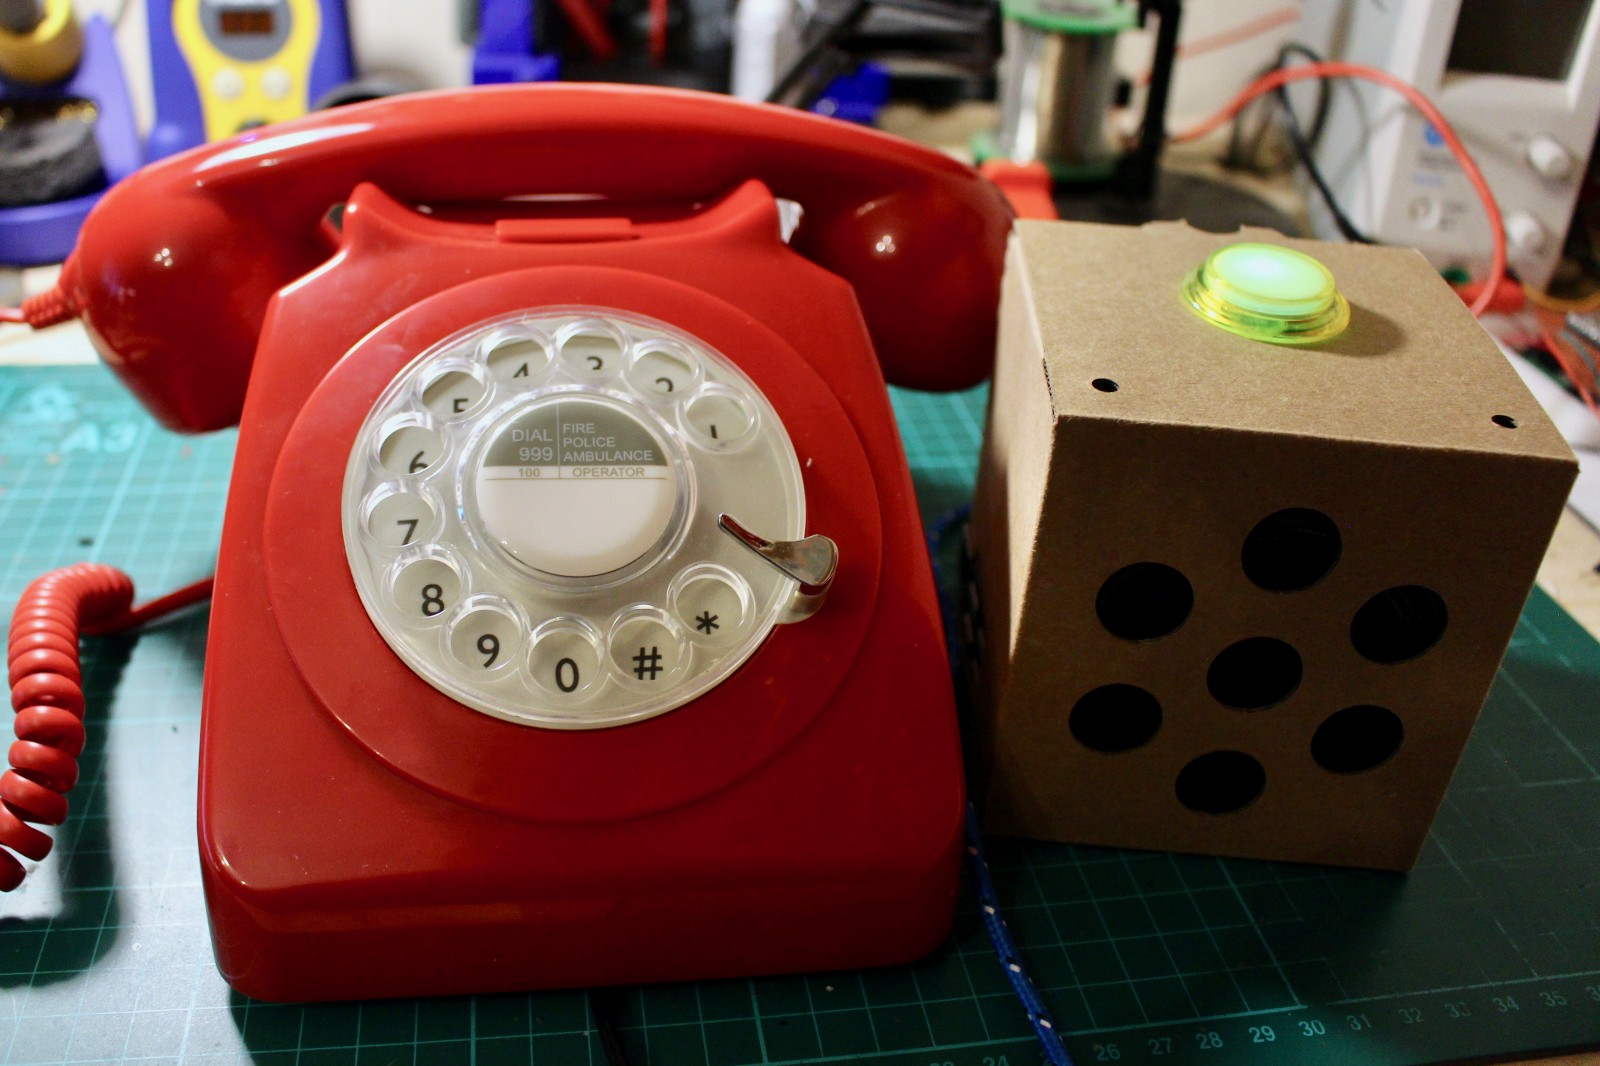 A Retro Rotary Phone Powered By Aiy Projects And The Raspberry Pi Telecom Hybrid Circuits For Other Equipments Than Telephones My New Build Next To Original Voice Kit